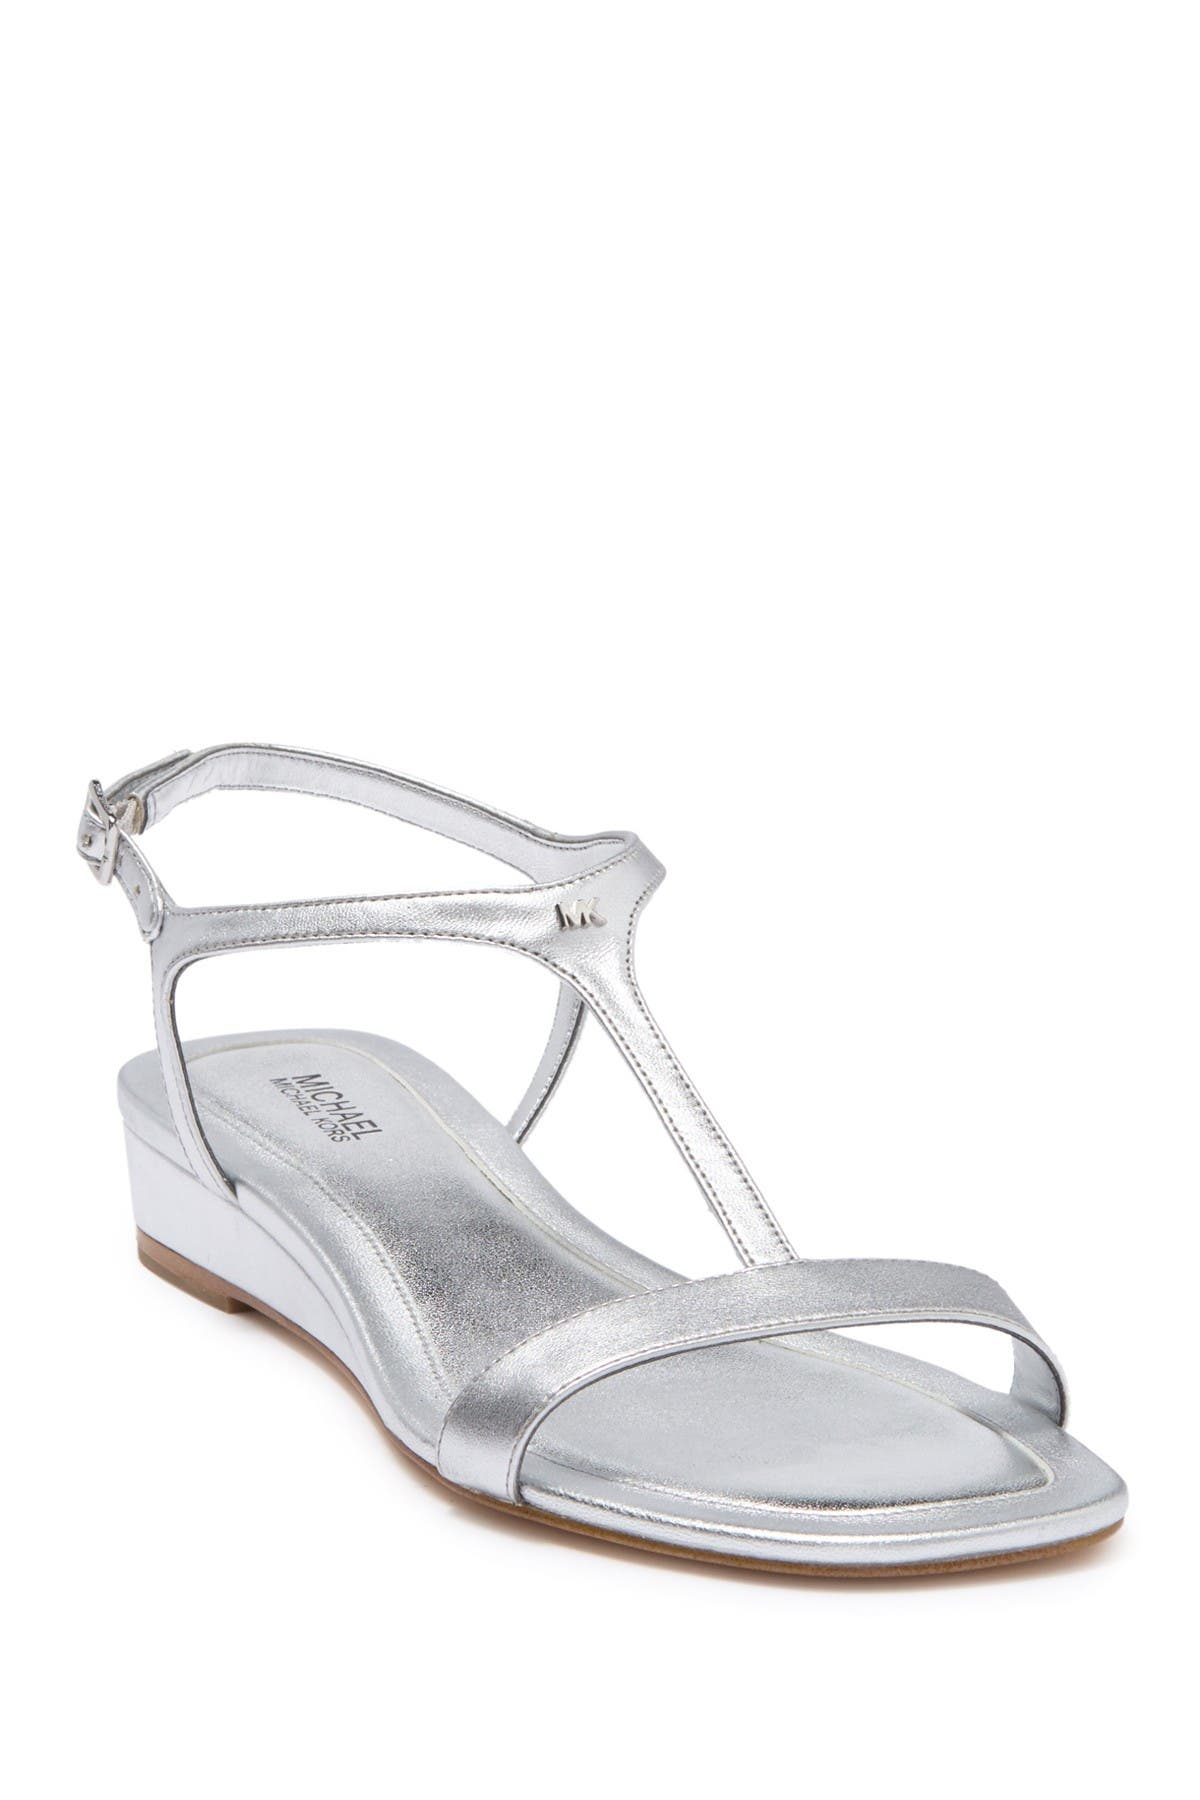 Image of MICHAEL Michael Kors Arden Wedge